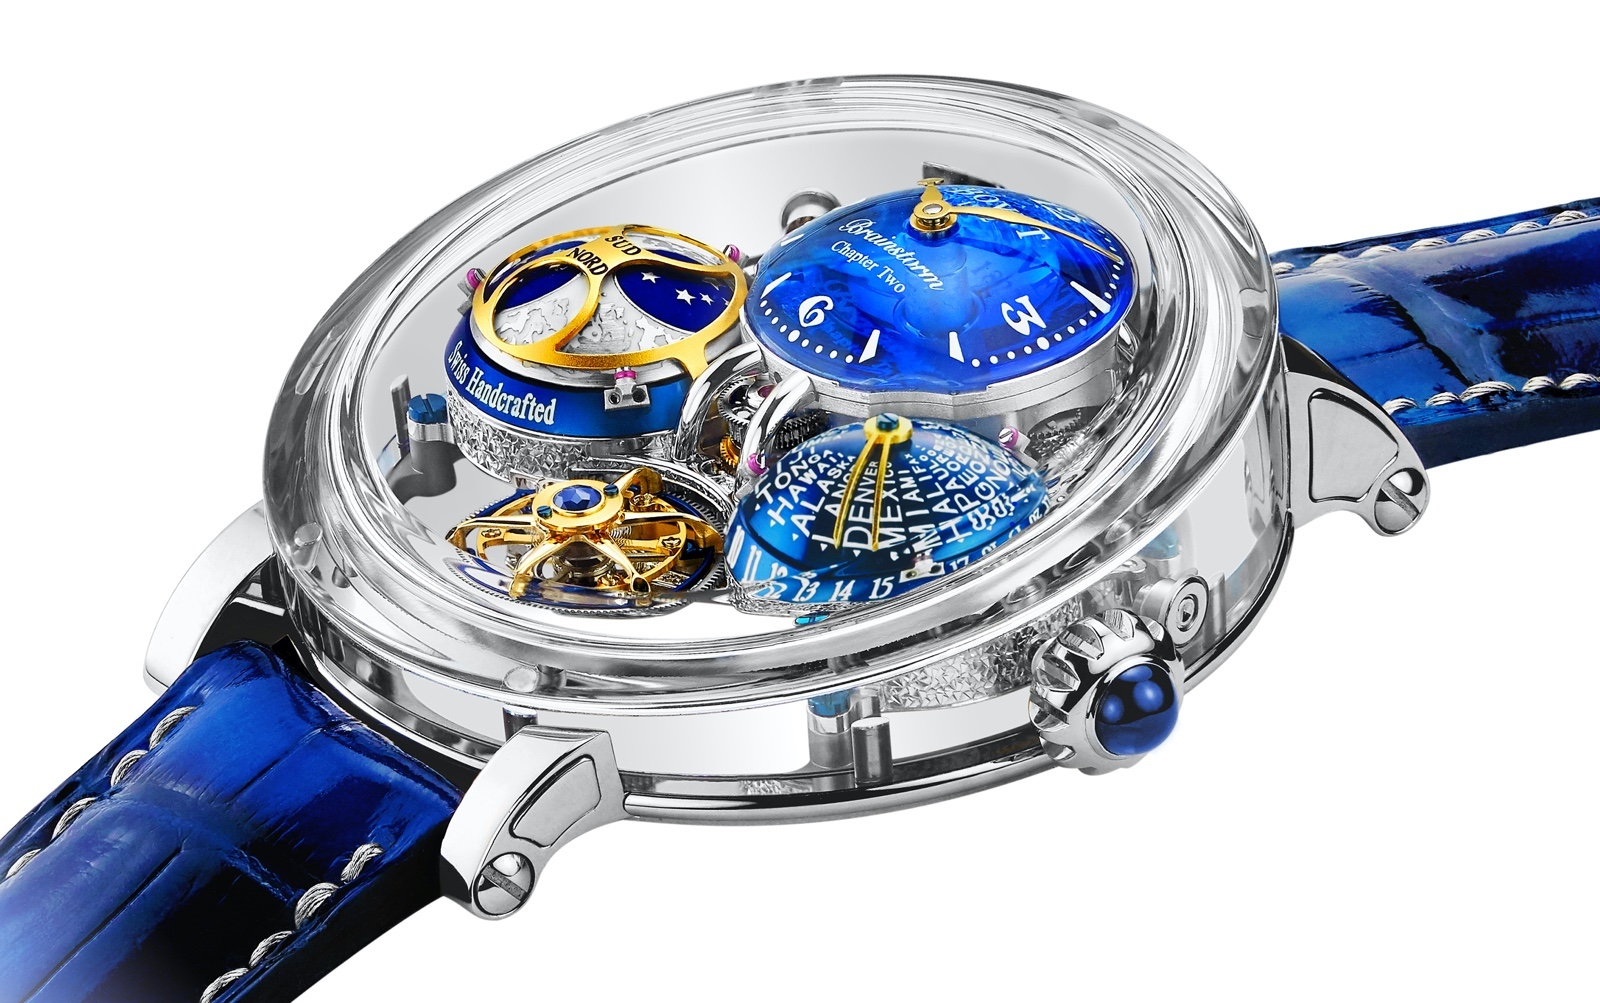 Bovet 1822 Récital 26 Brainstorm Chapter Two